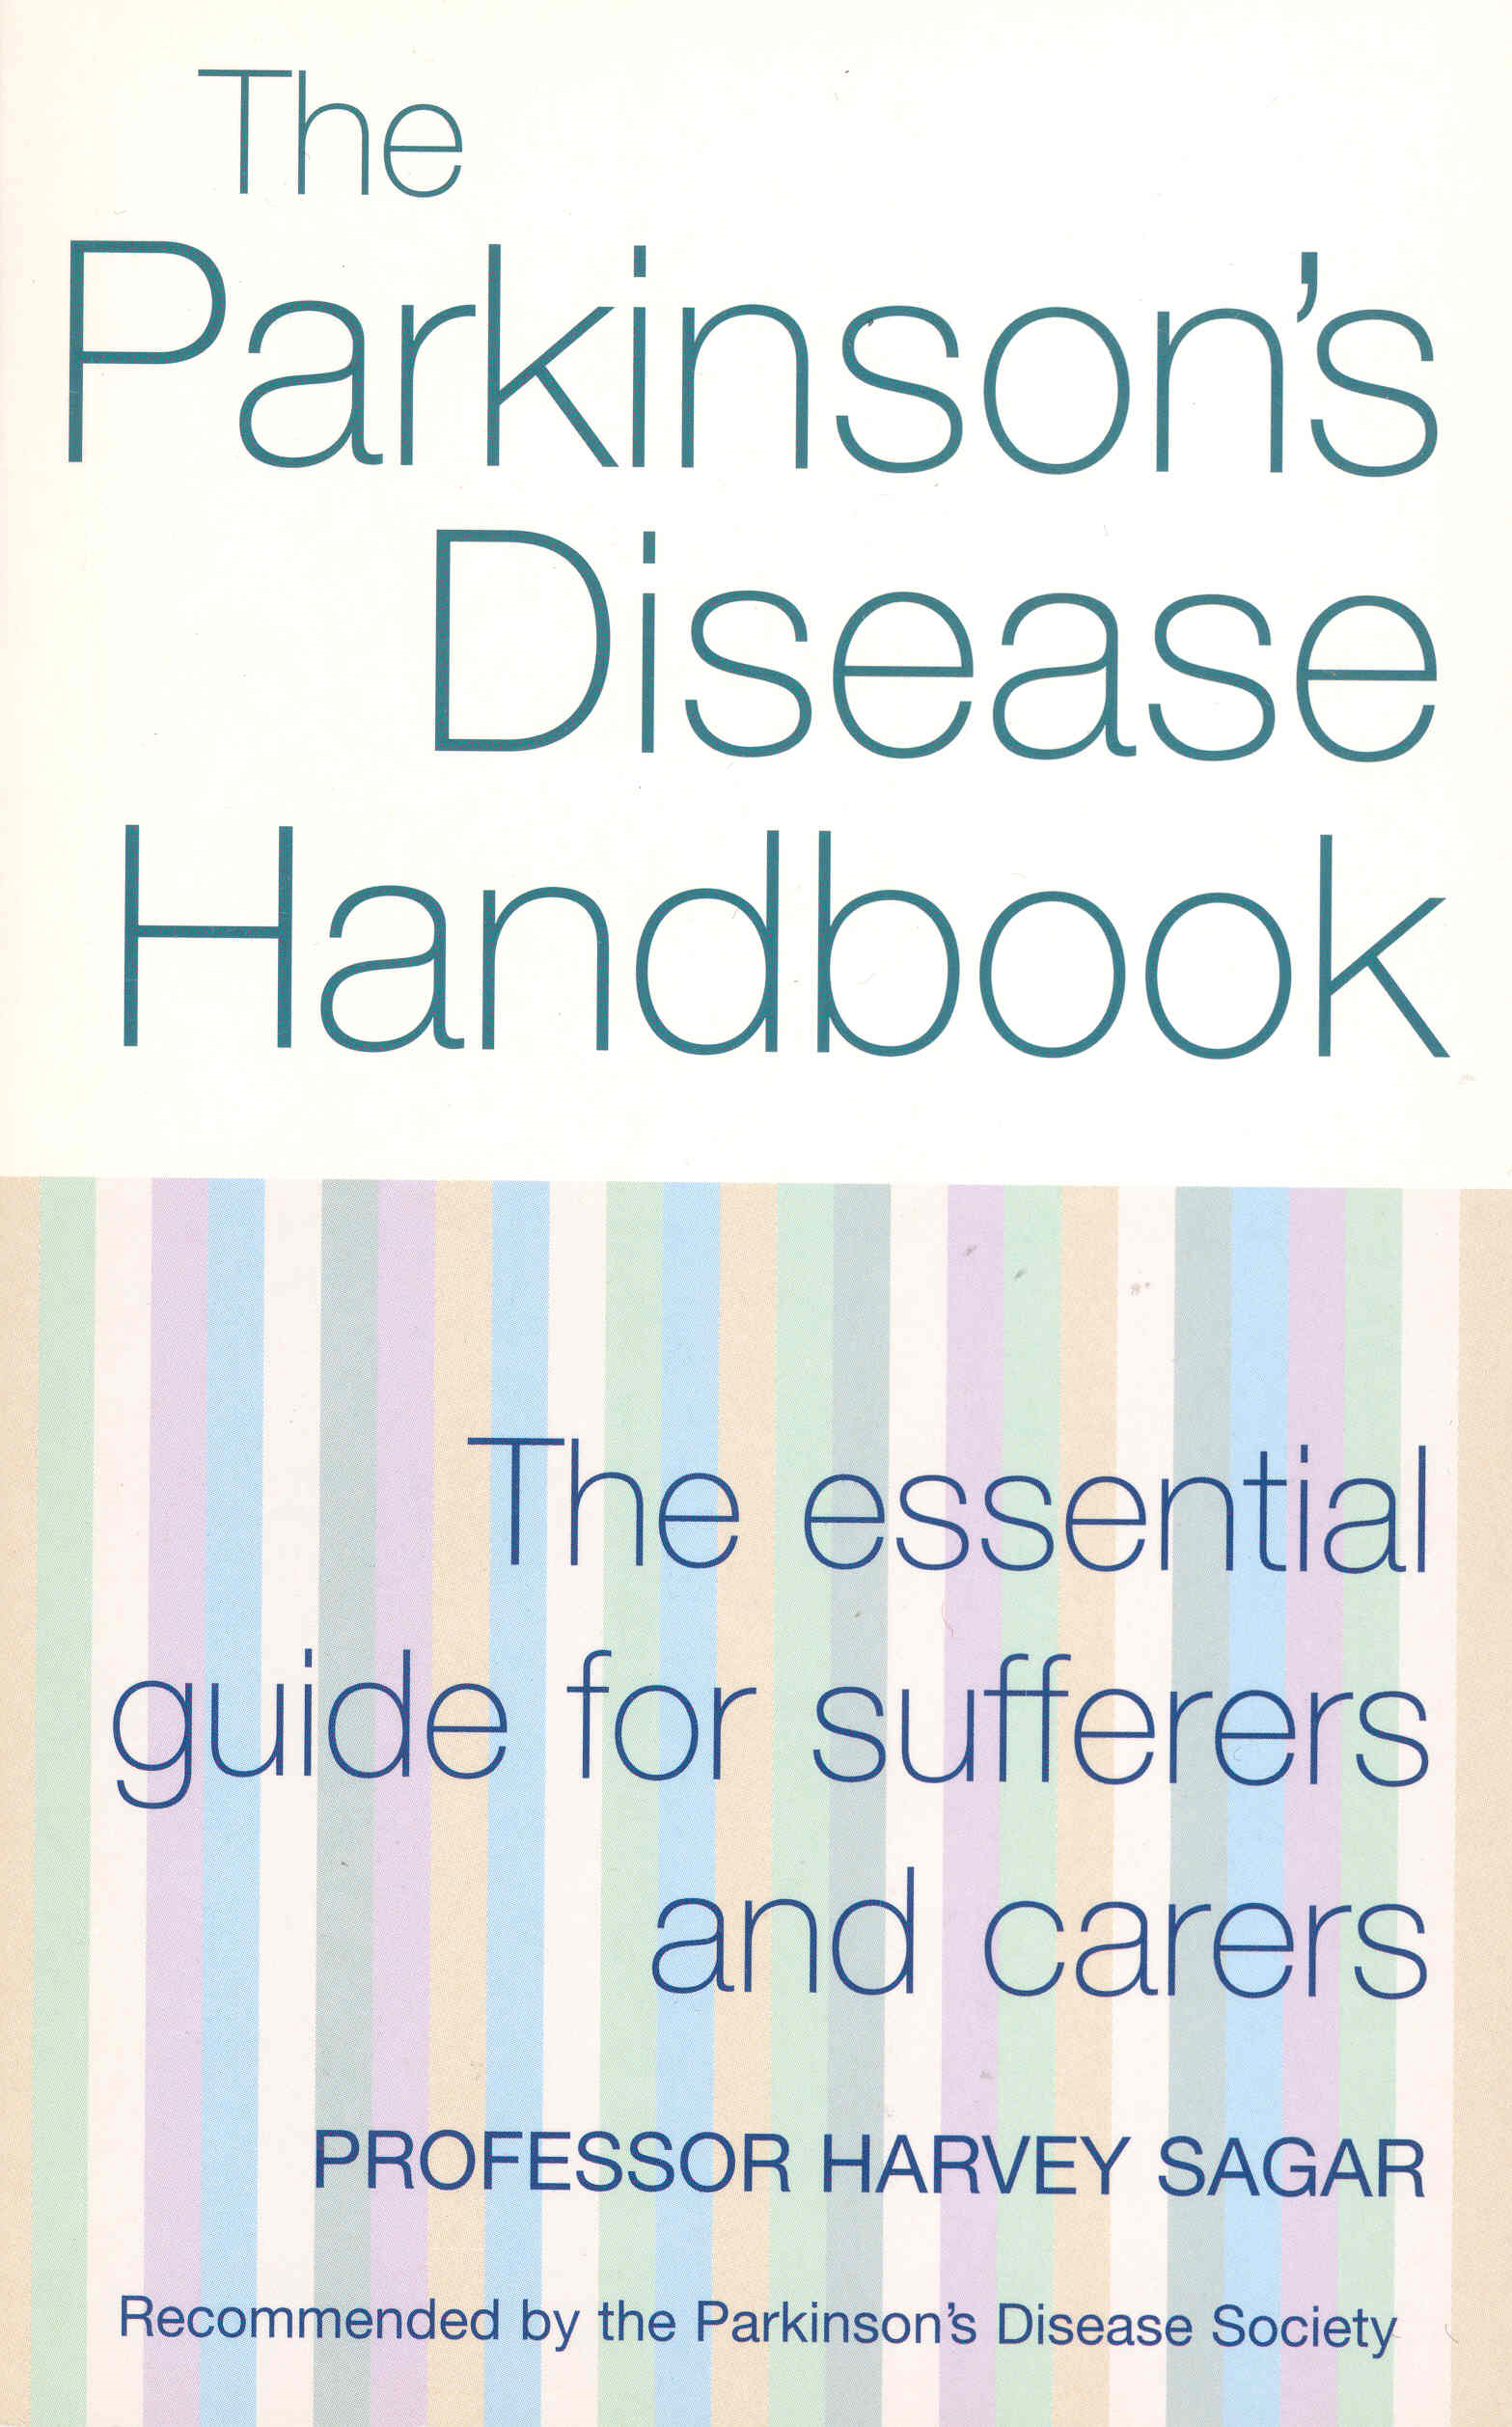 The New Parkinson's Disease Handbook The essential guide for sufferers and carers